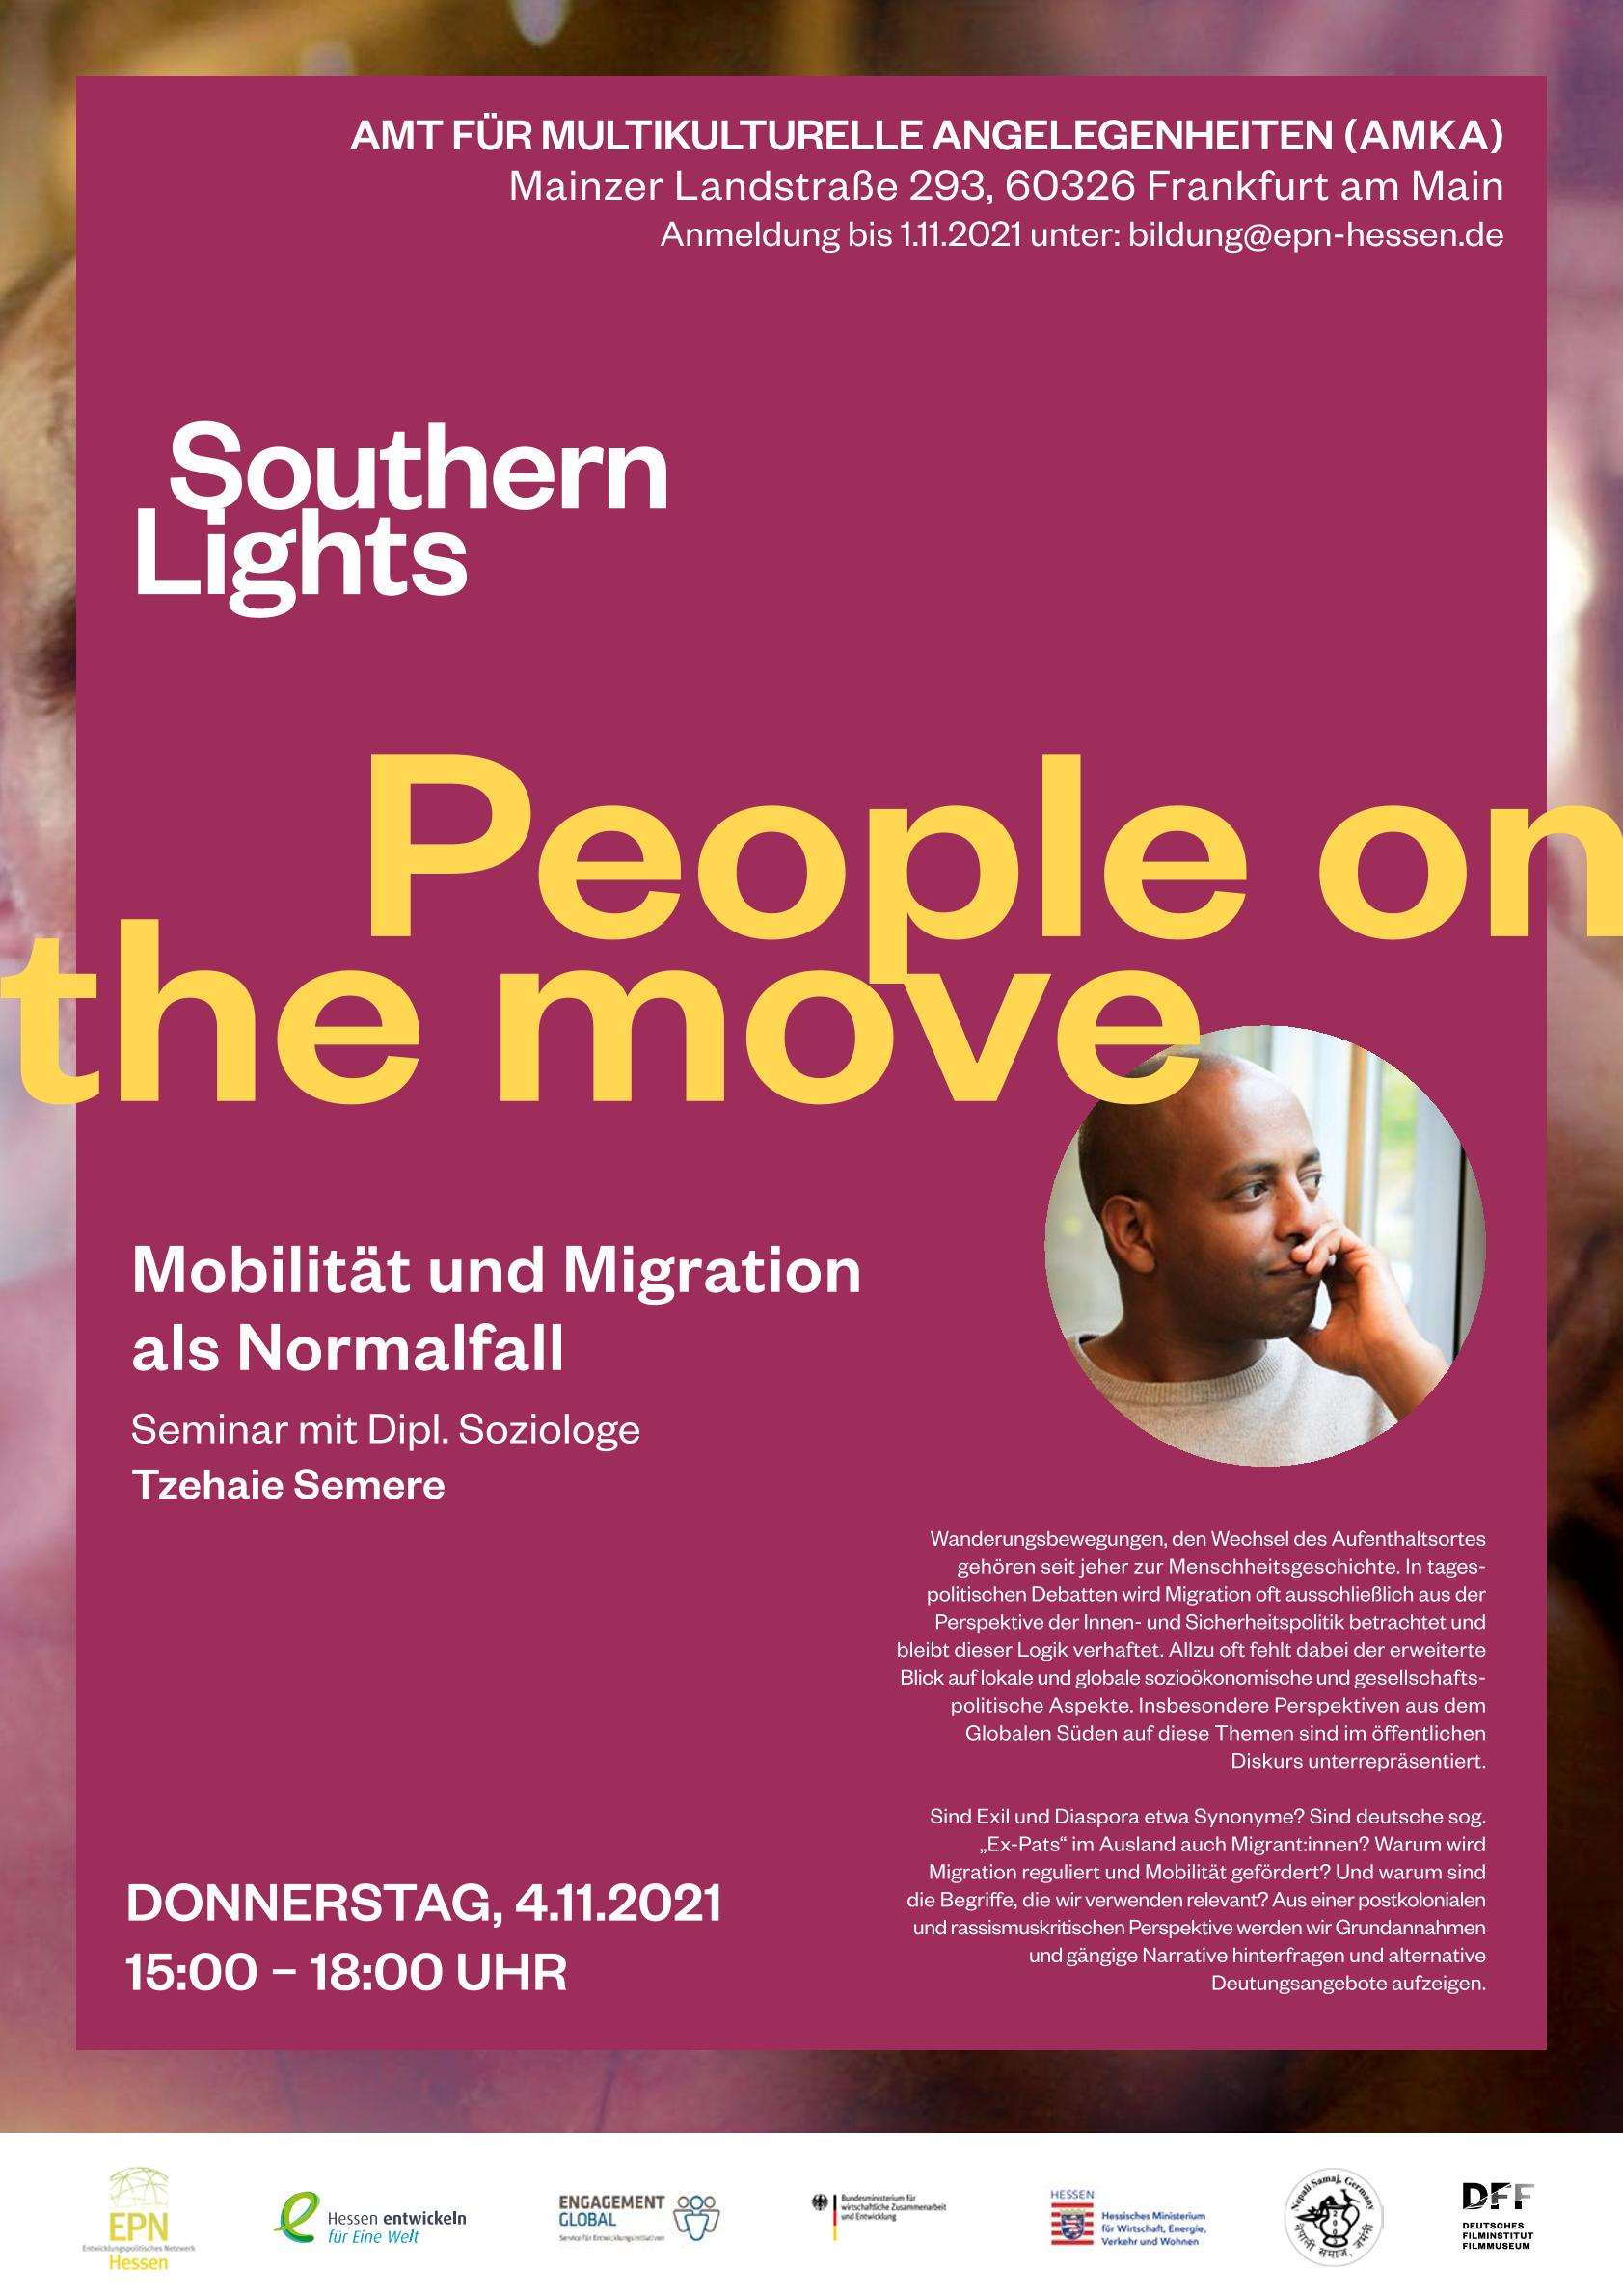 People on the move: Mobilität und Migration als Normalfall